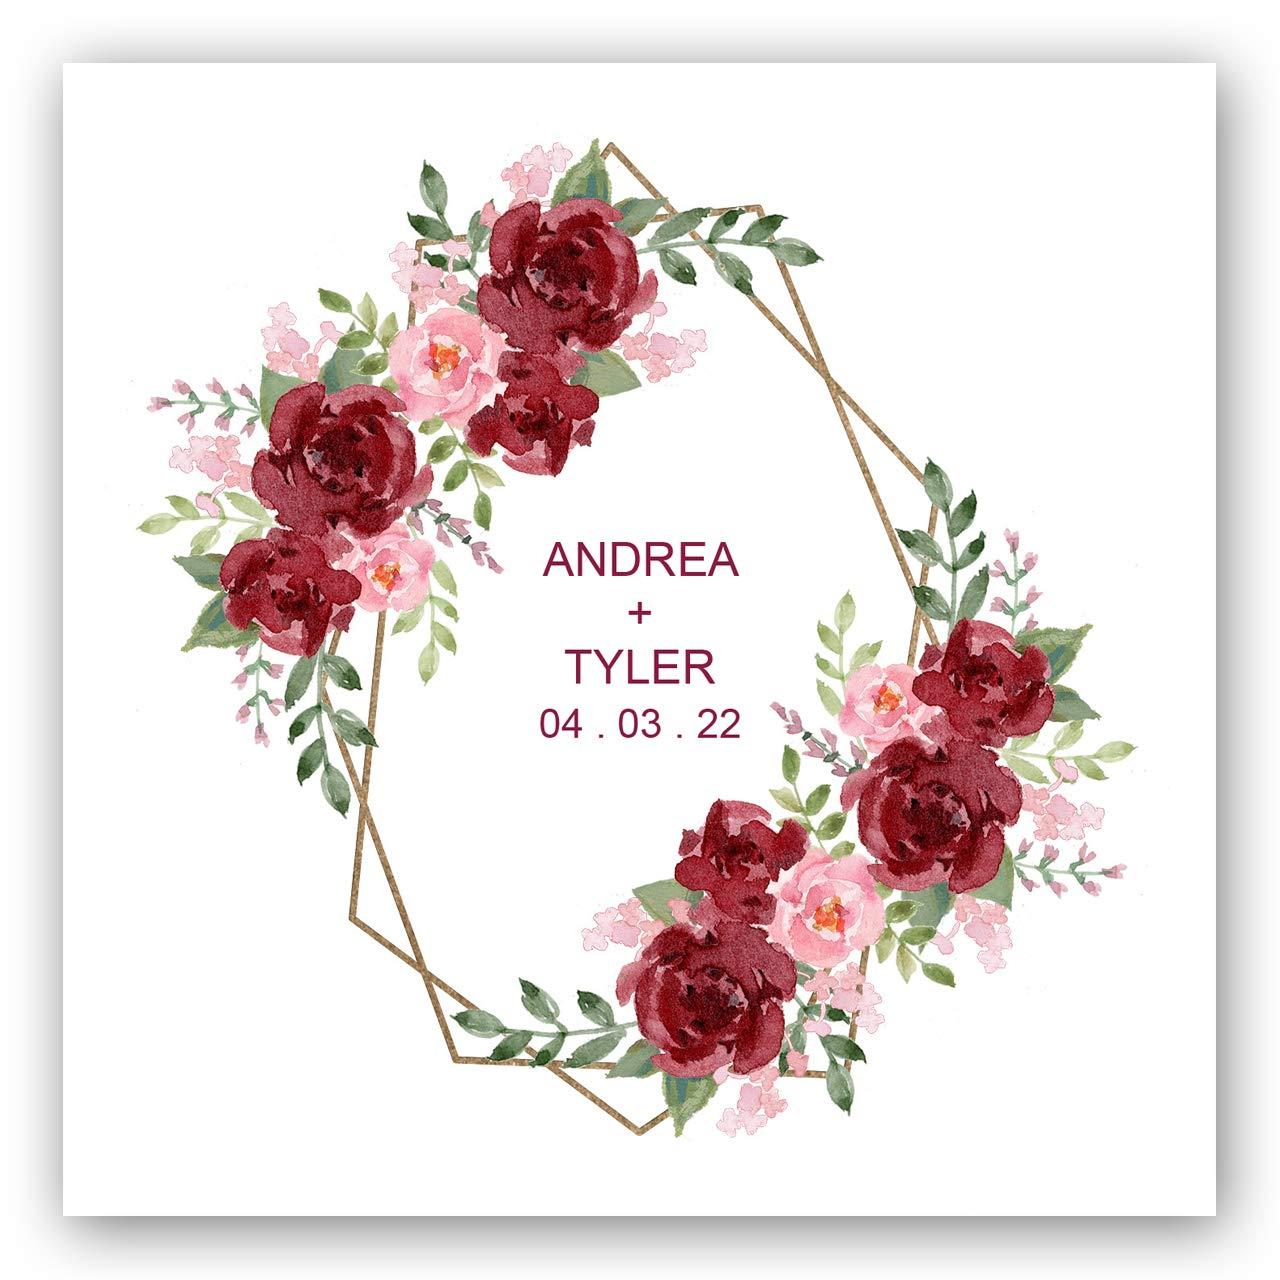 Vibrant Floral Personalized Beverage Napkins- 100 Custom Printed White Uncoined Napkins. 4 3/4'' x 4 3/4'' folded. Made in the USA by Canopy Street